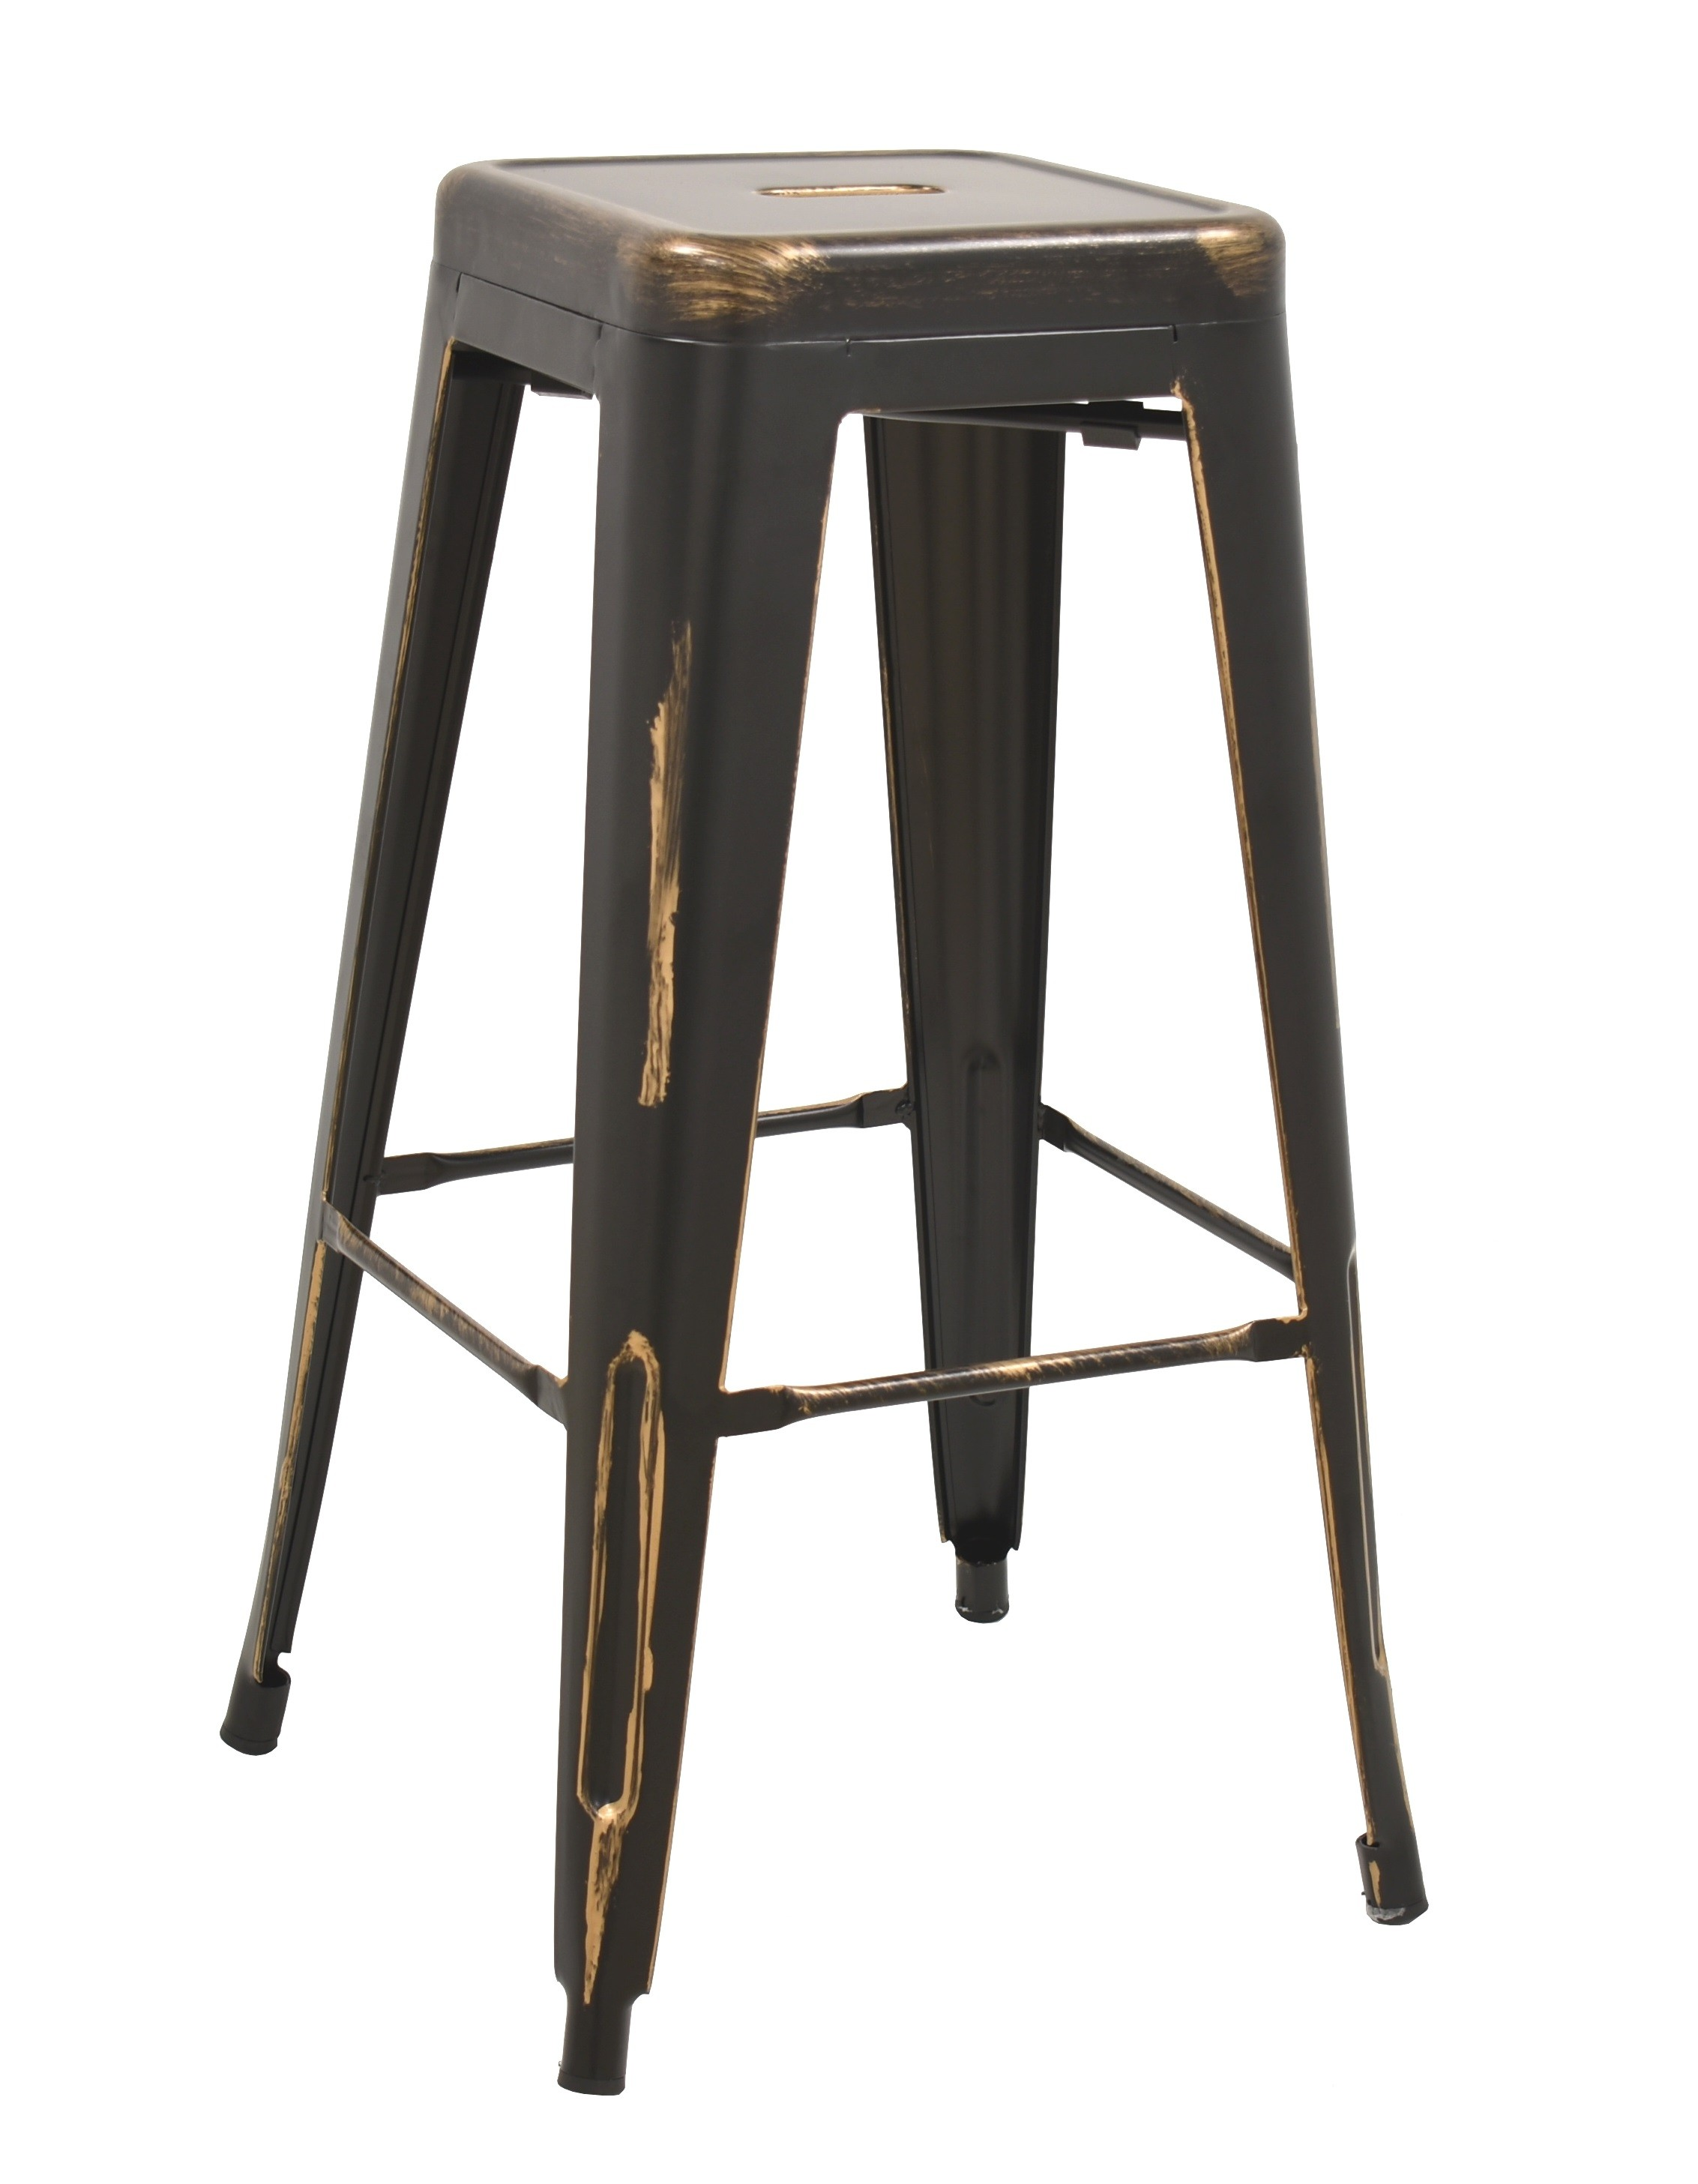 Stool TOL D RETRO, Steel, Black Brushed Gold